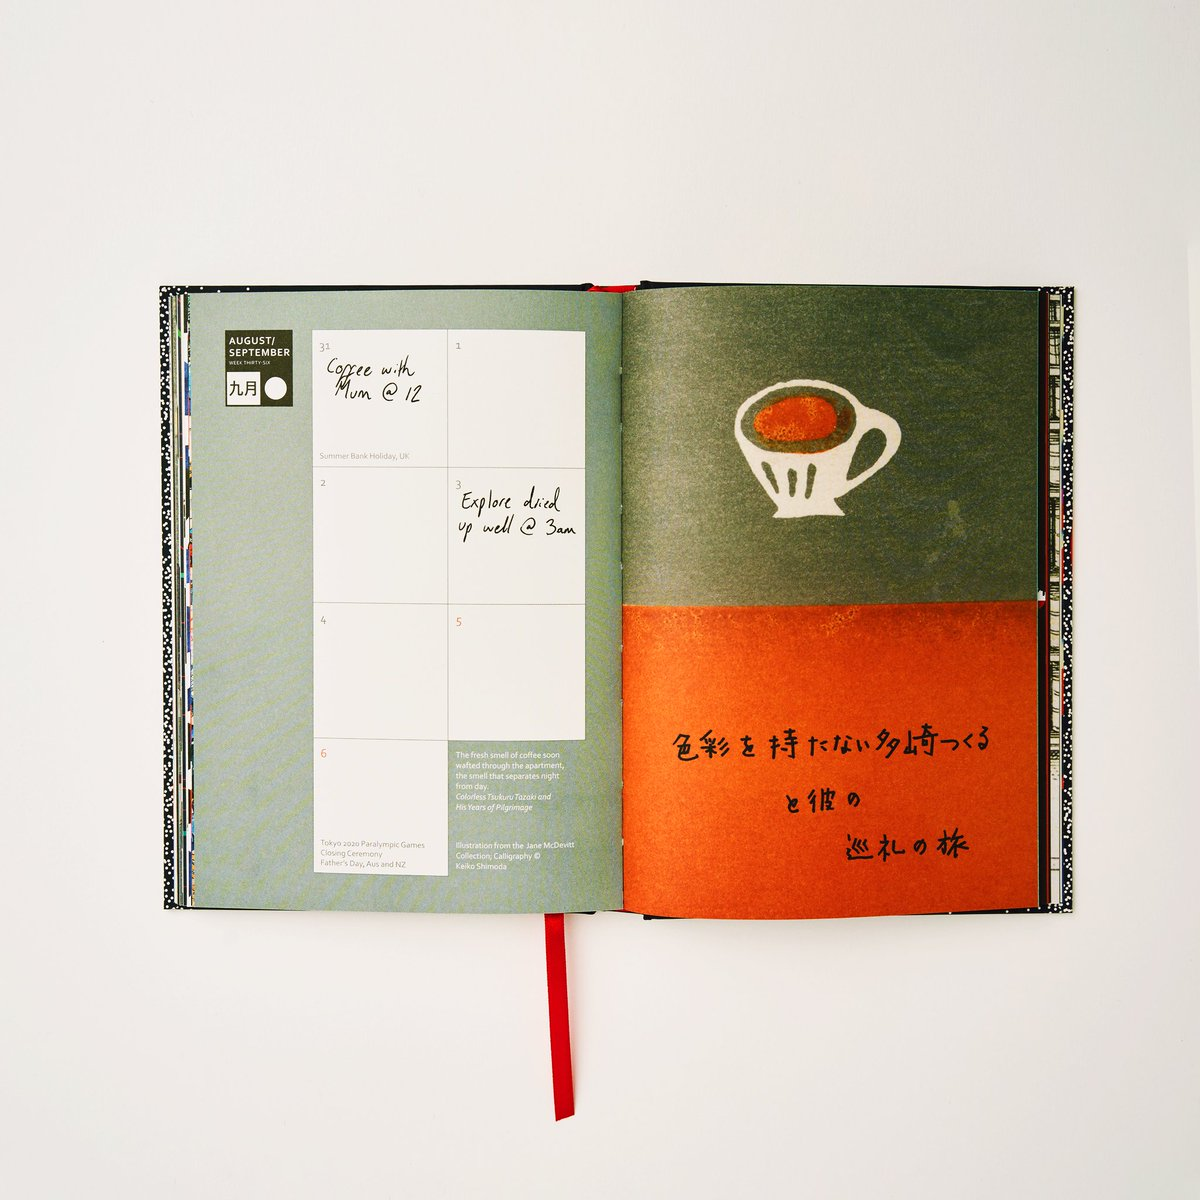 penguin books uk en plan your in style this